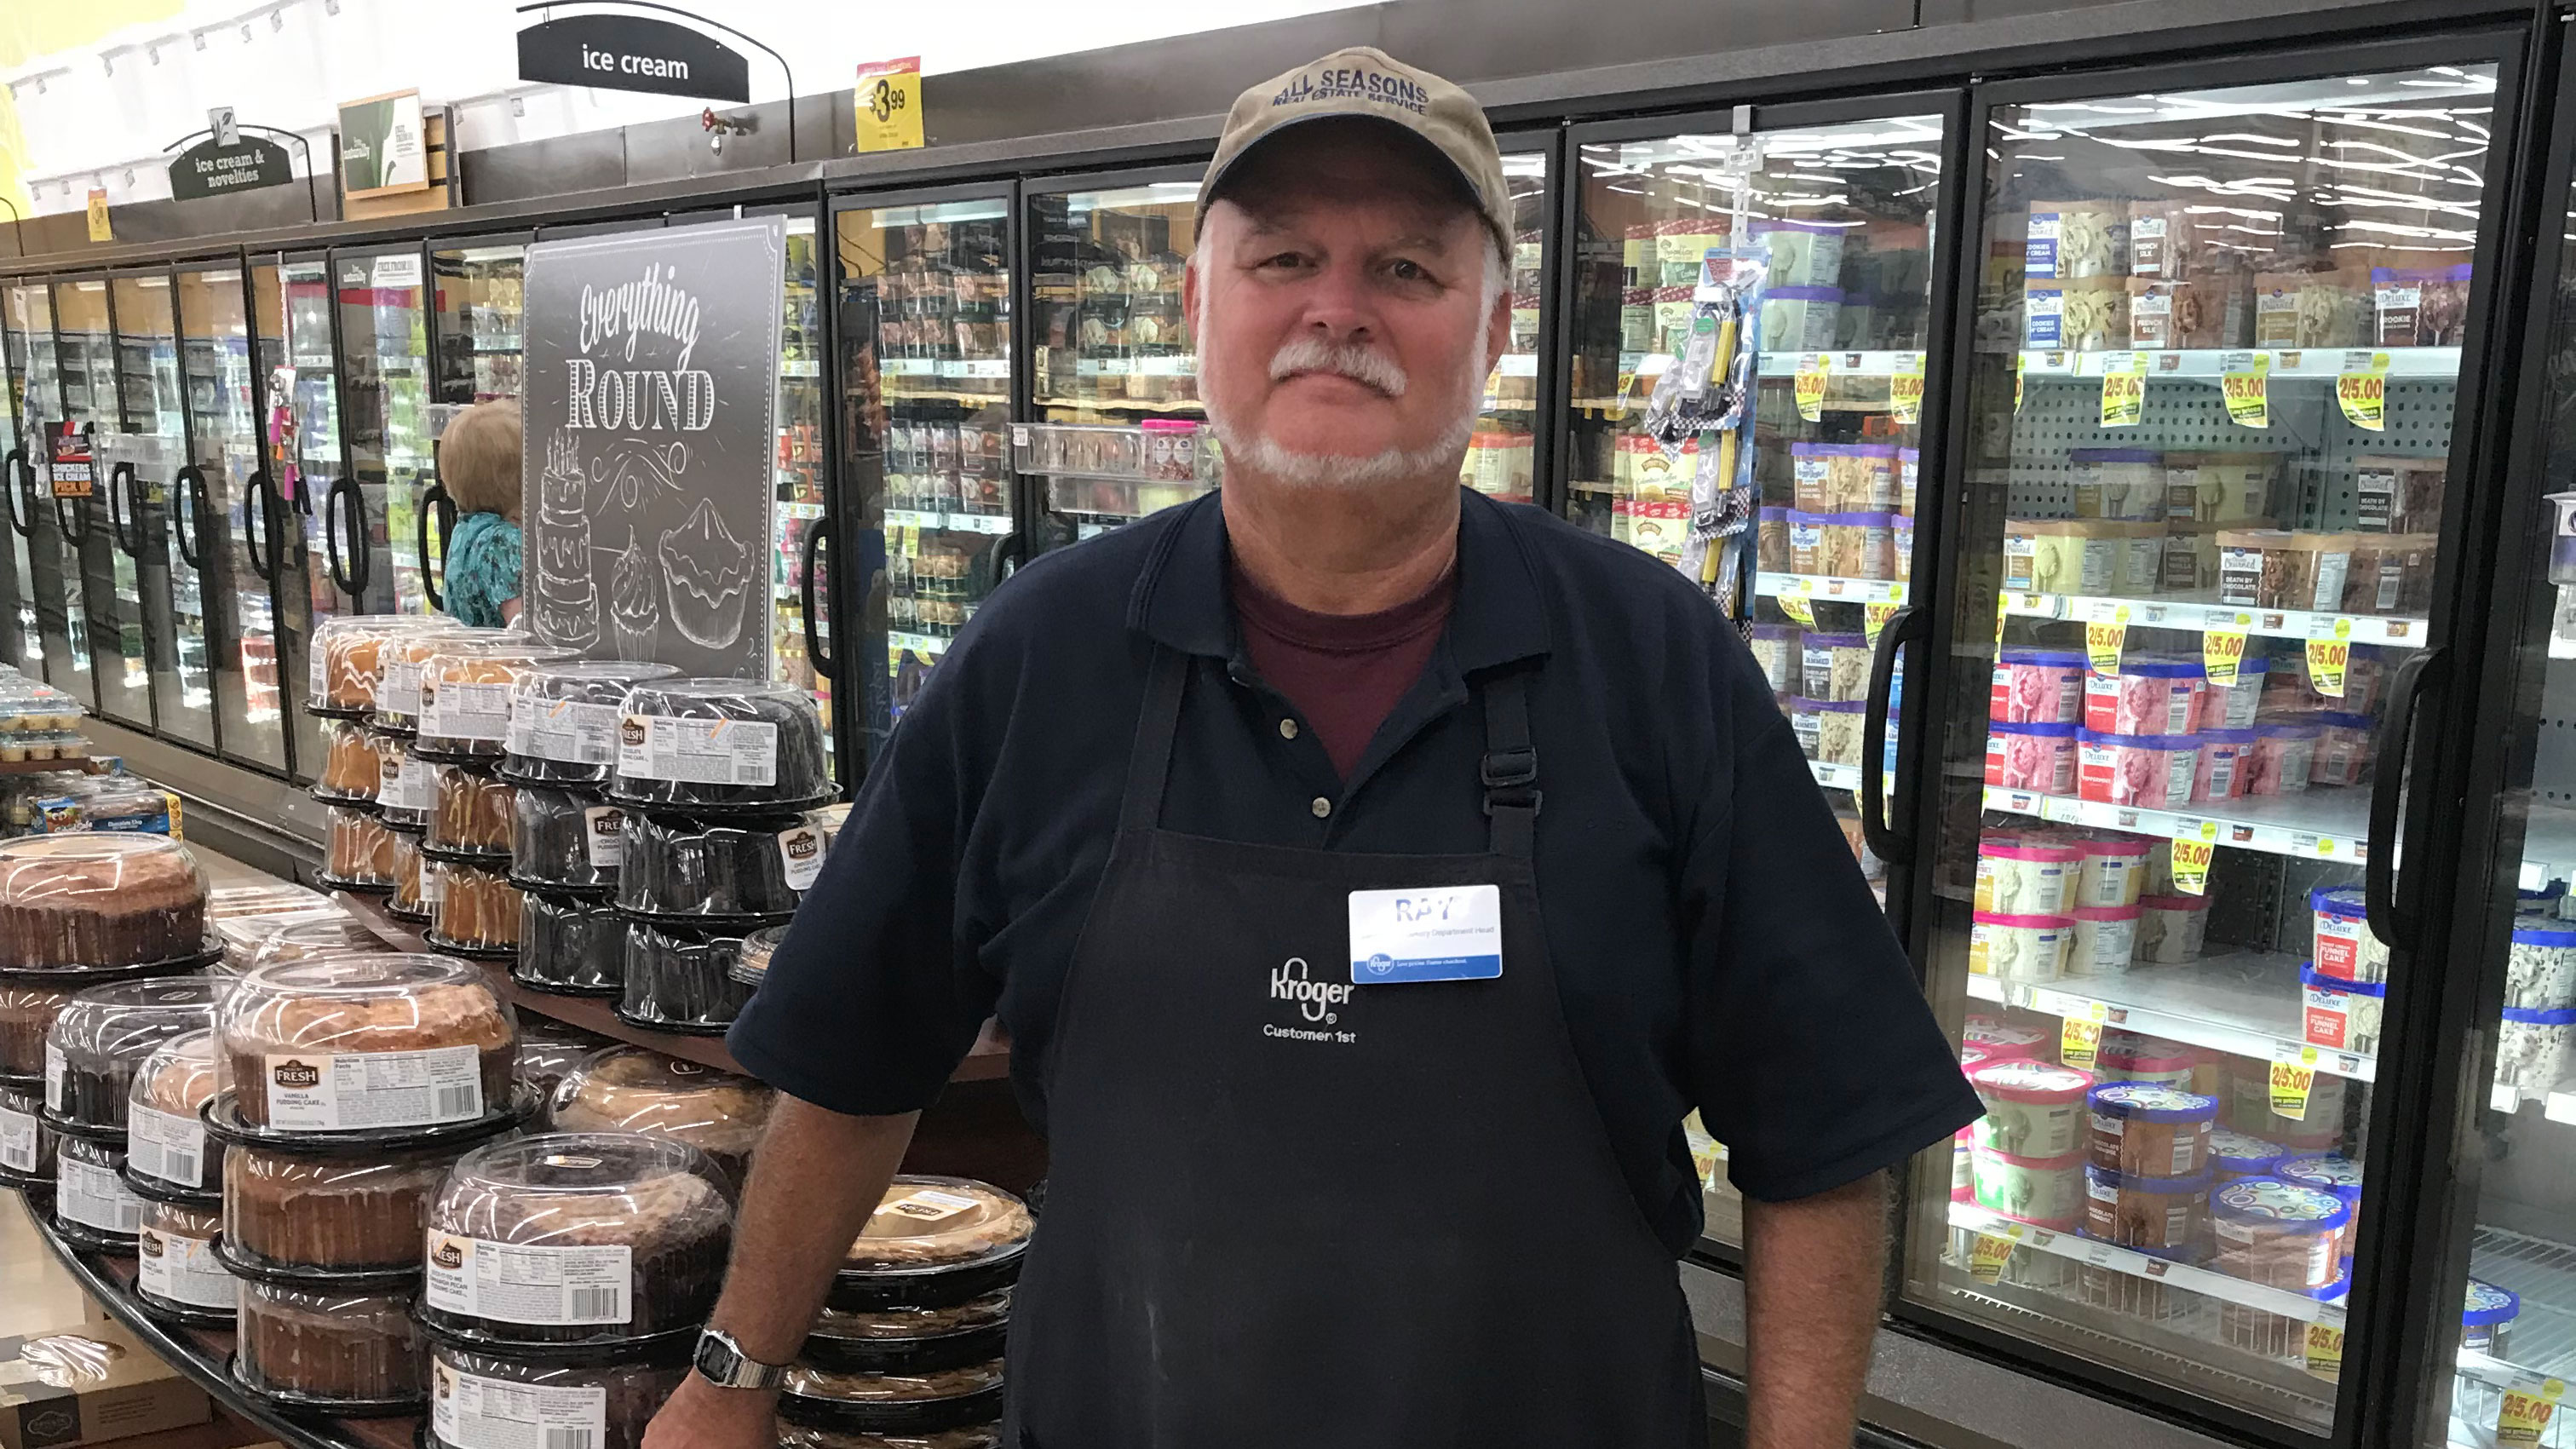 Kroger Shop Steward Retires After 42 Years